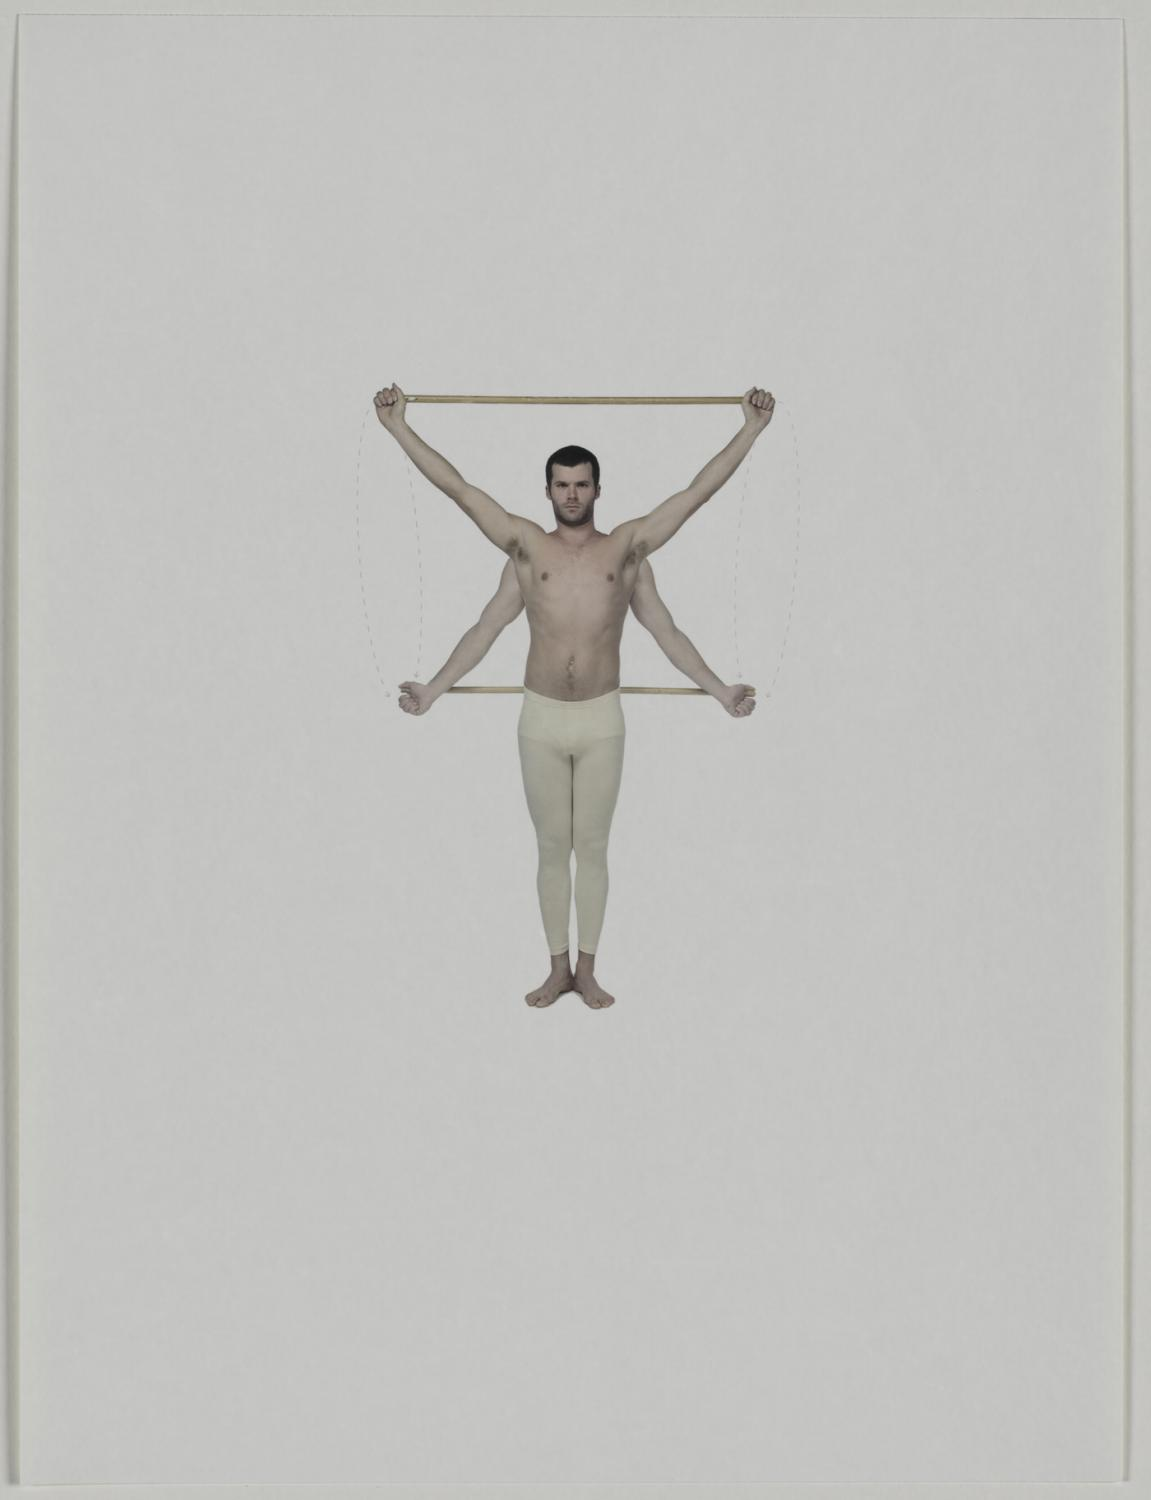 Jesse Aron Green, Swinging of the Arms Backward and Forward, from the series Illustration and Deception of the Medico-Gymnastic Exercises, 2008. Courtesy Harvard Art Museums/Fogg Museum, Margaret Fisher Fund  © Jesse Aron Green